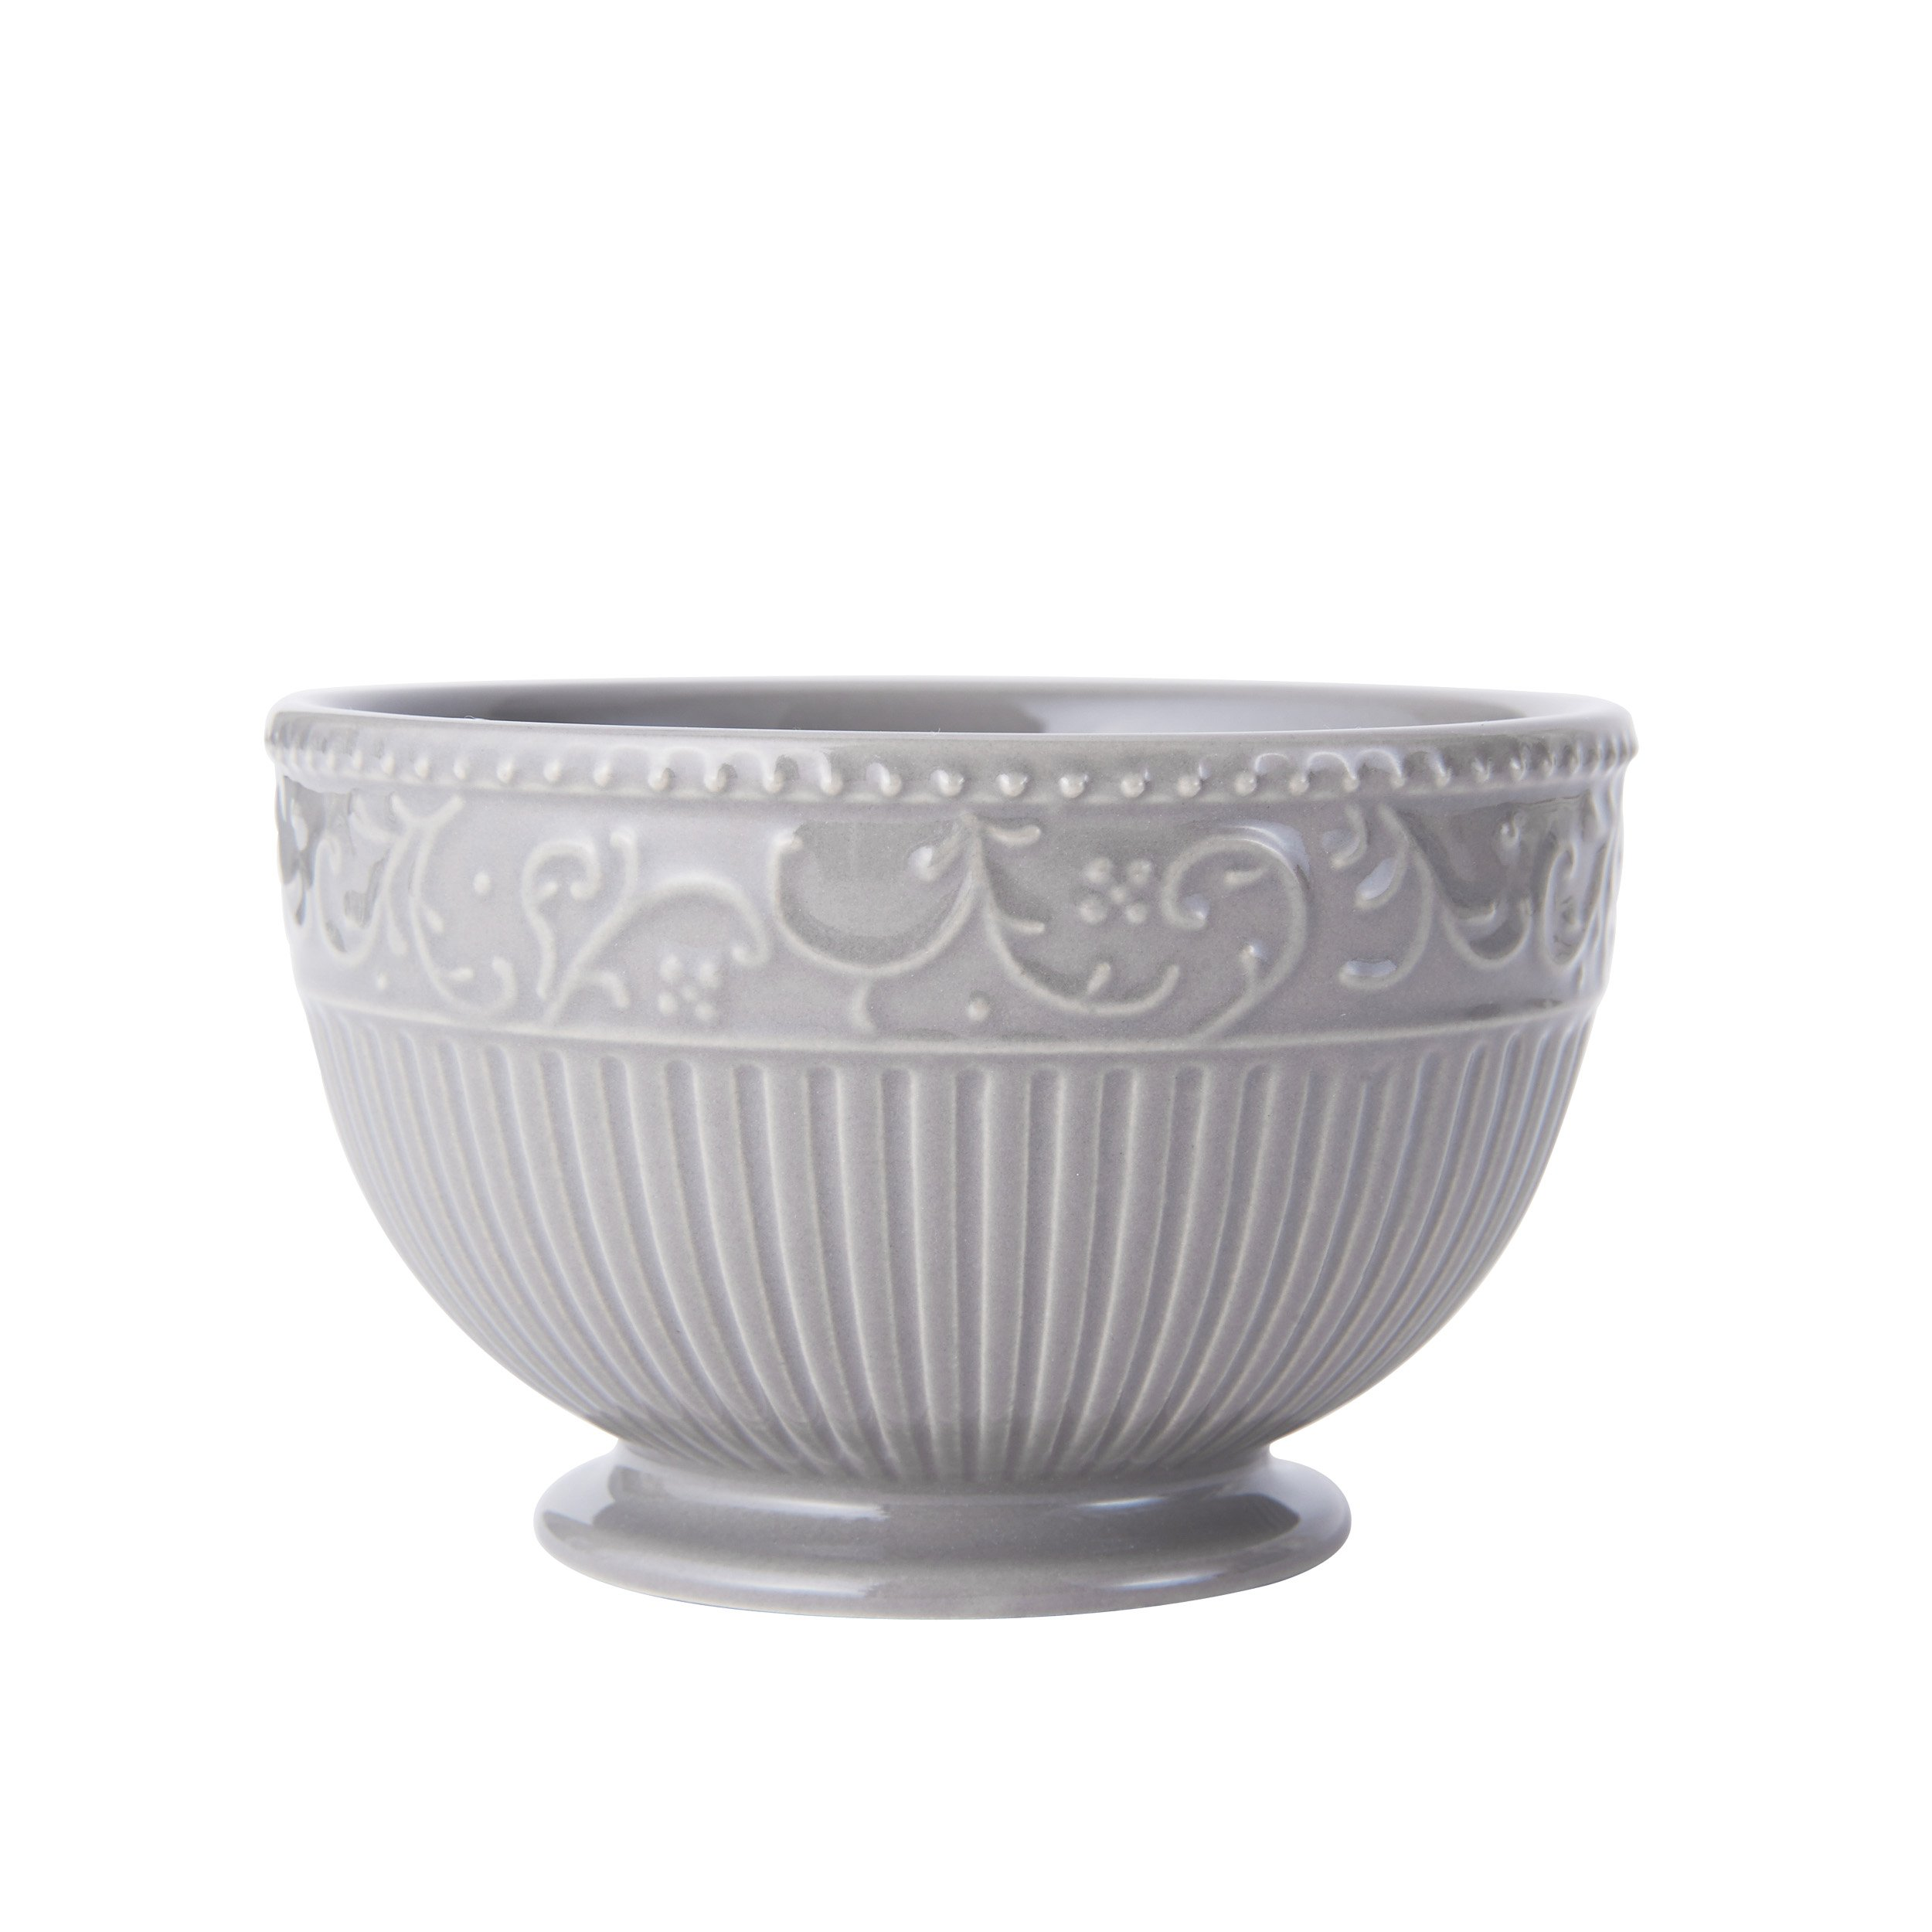 Mikasa Italian Countryside Accents Footed Fruit Bowl, Scroll Grey